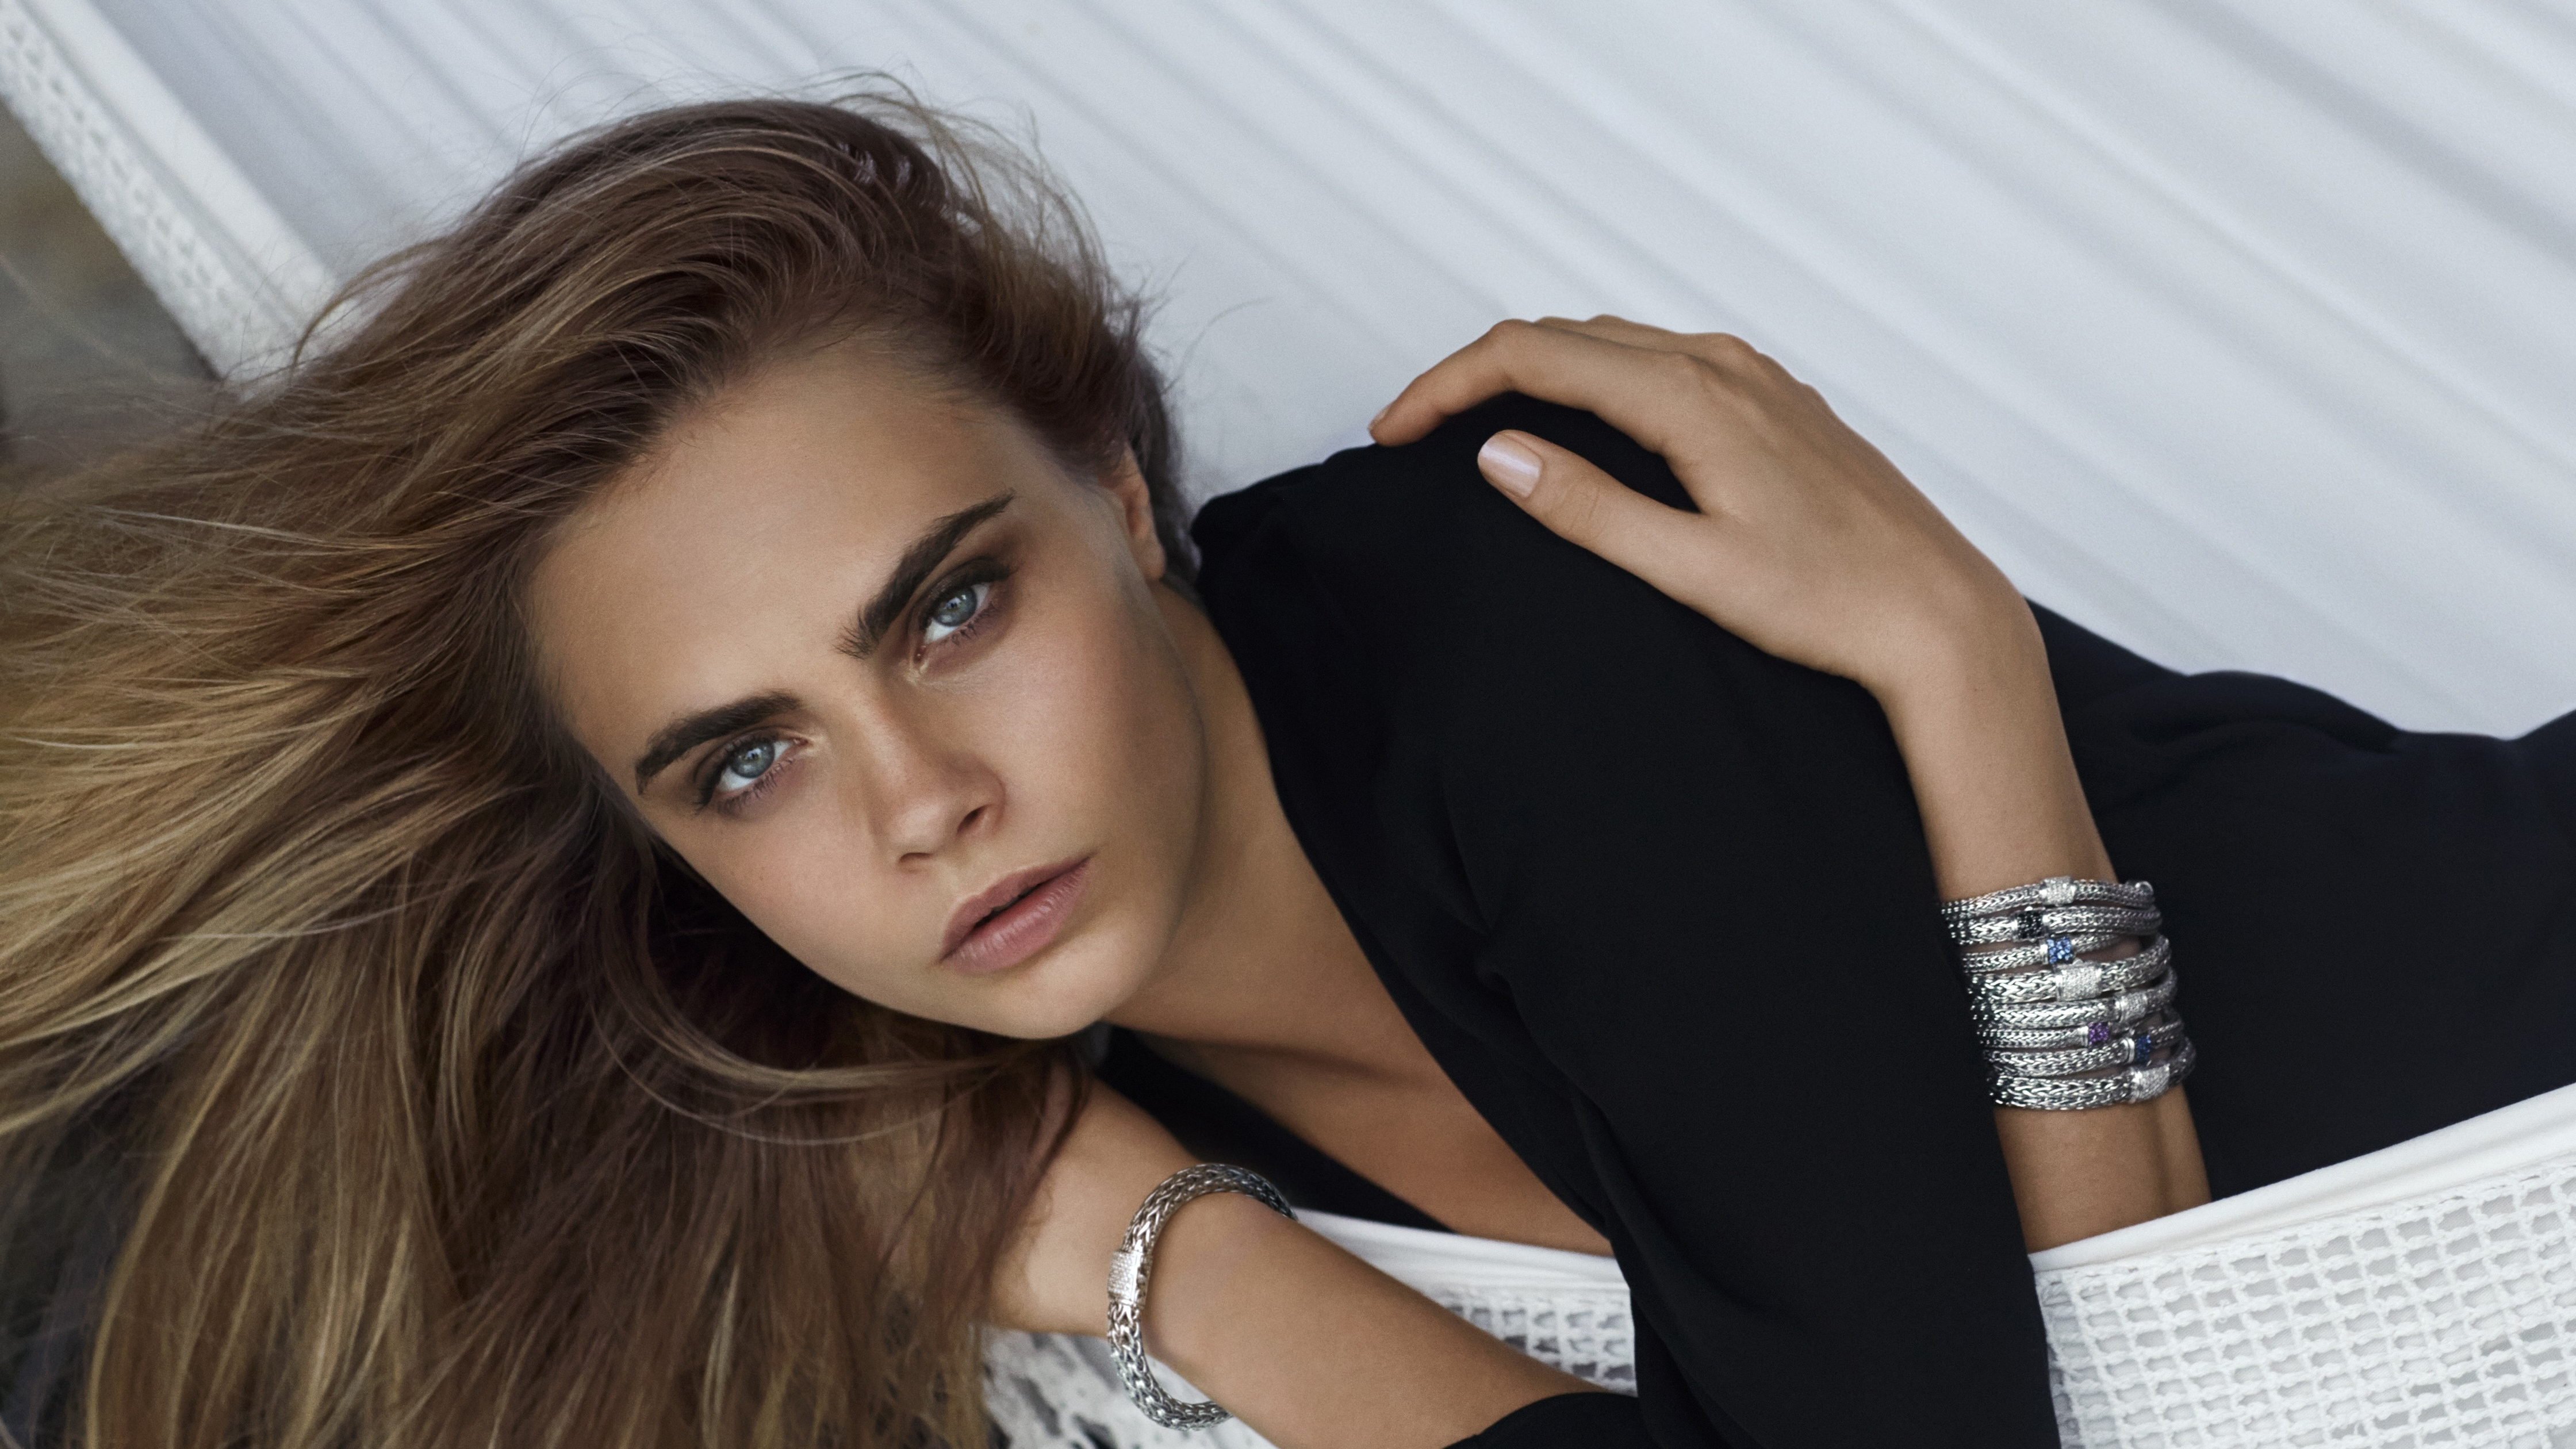 Cara Delevingne 2019 4k Hd Celebrities 4k Wallpapers Images Backgrounds Photos And Pictures